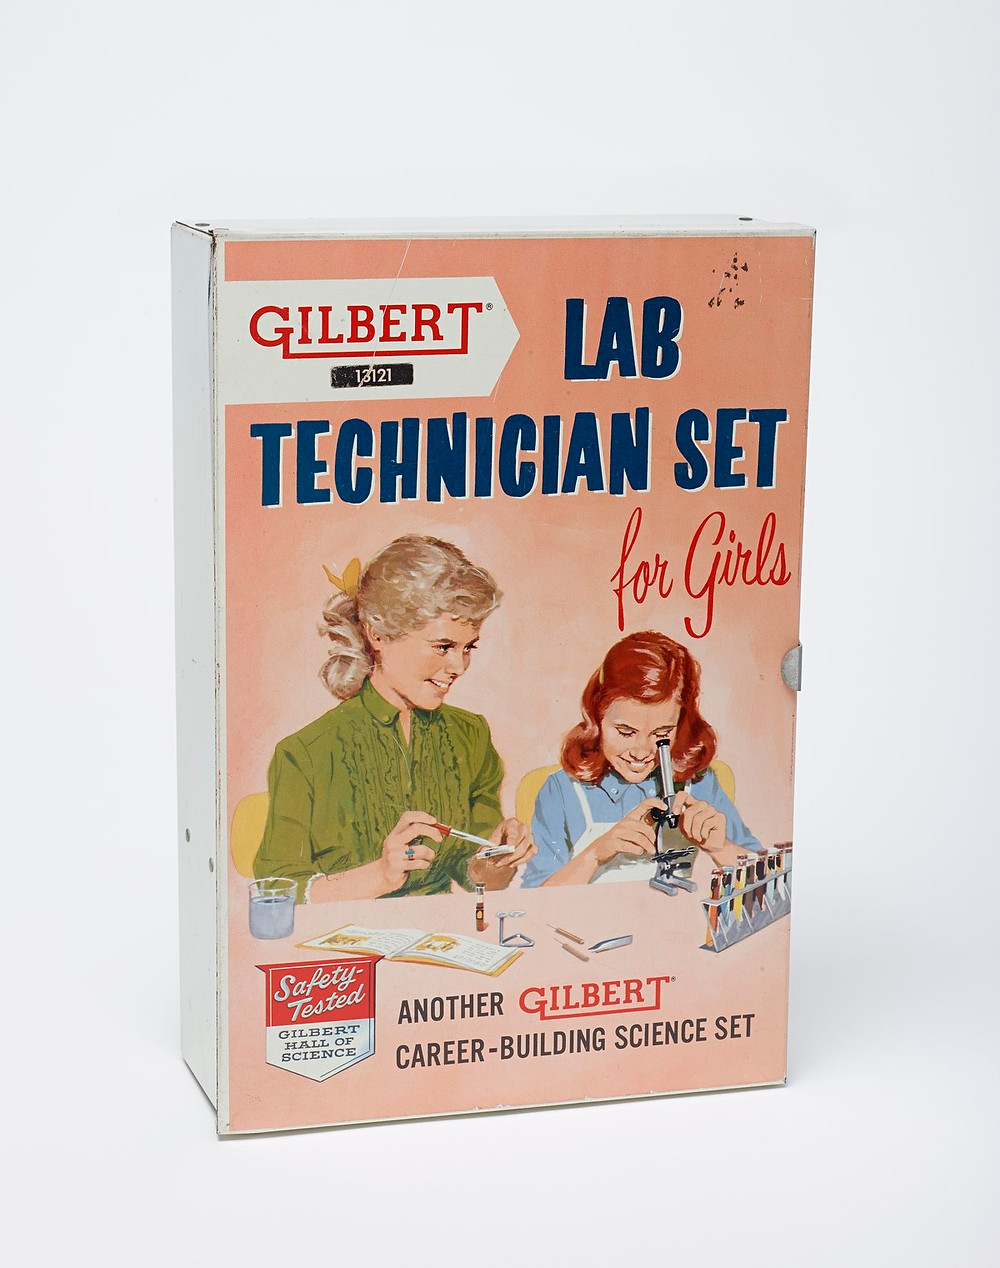 Gilbert Lab technician Set for Girls, 1958